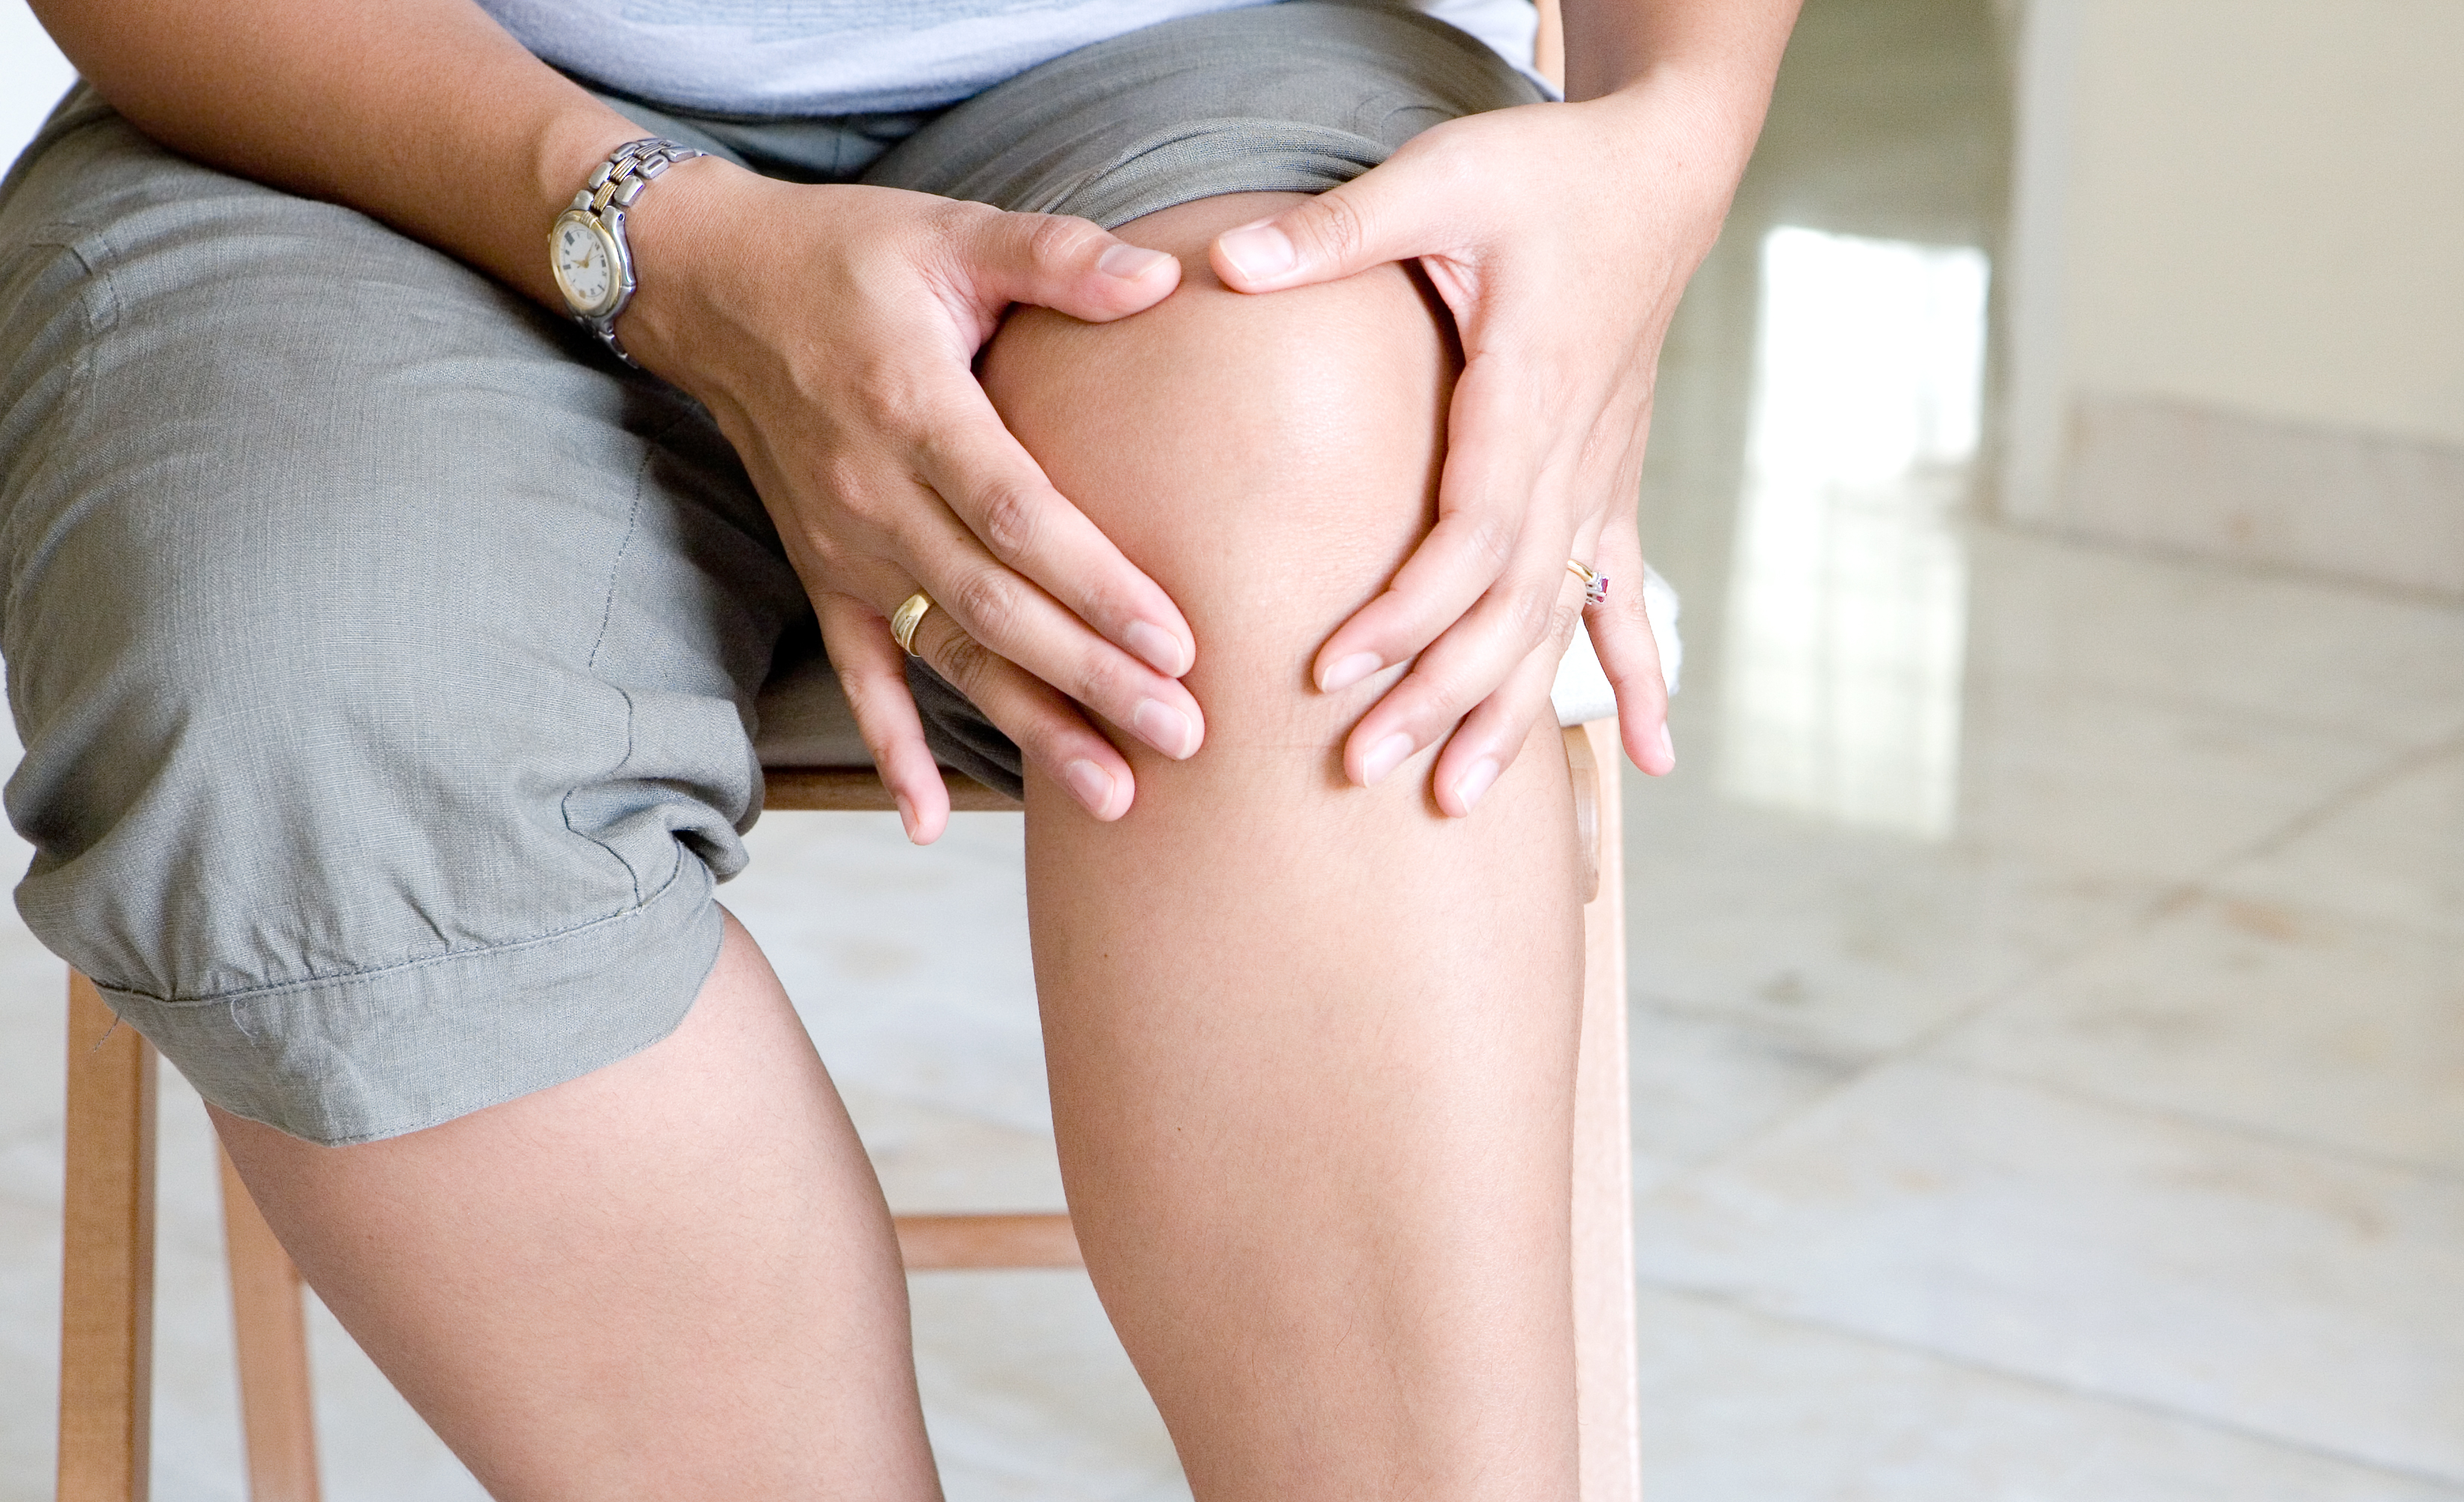 woman-suffering-from-knee-pain-5298828